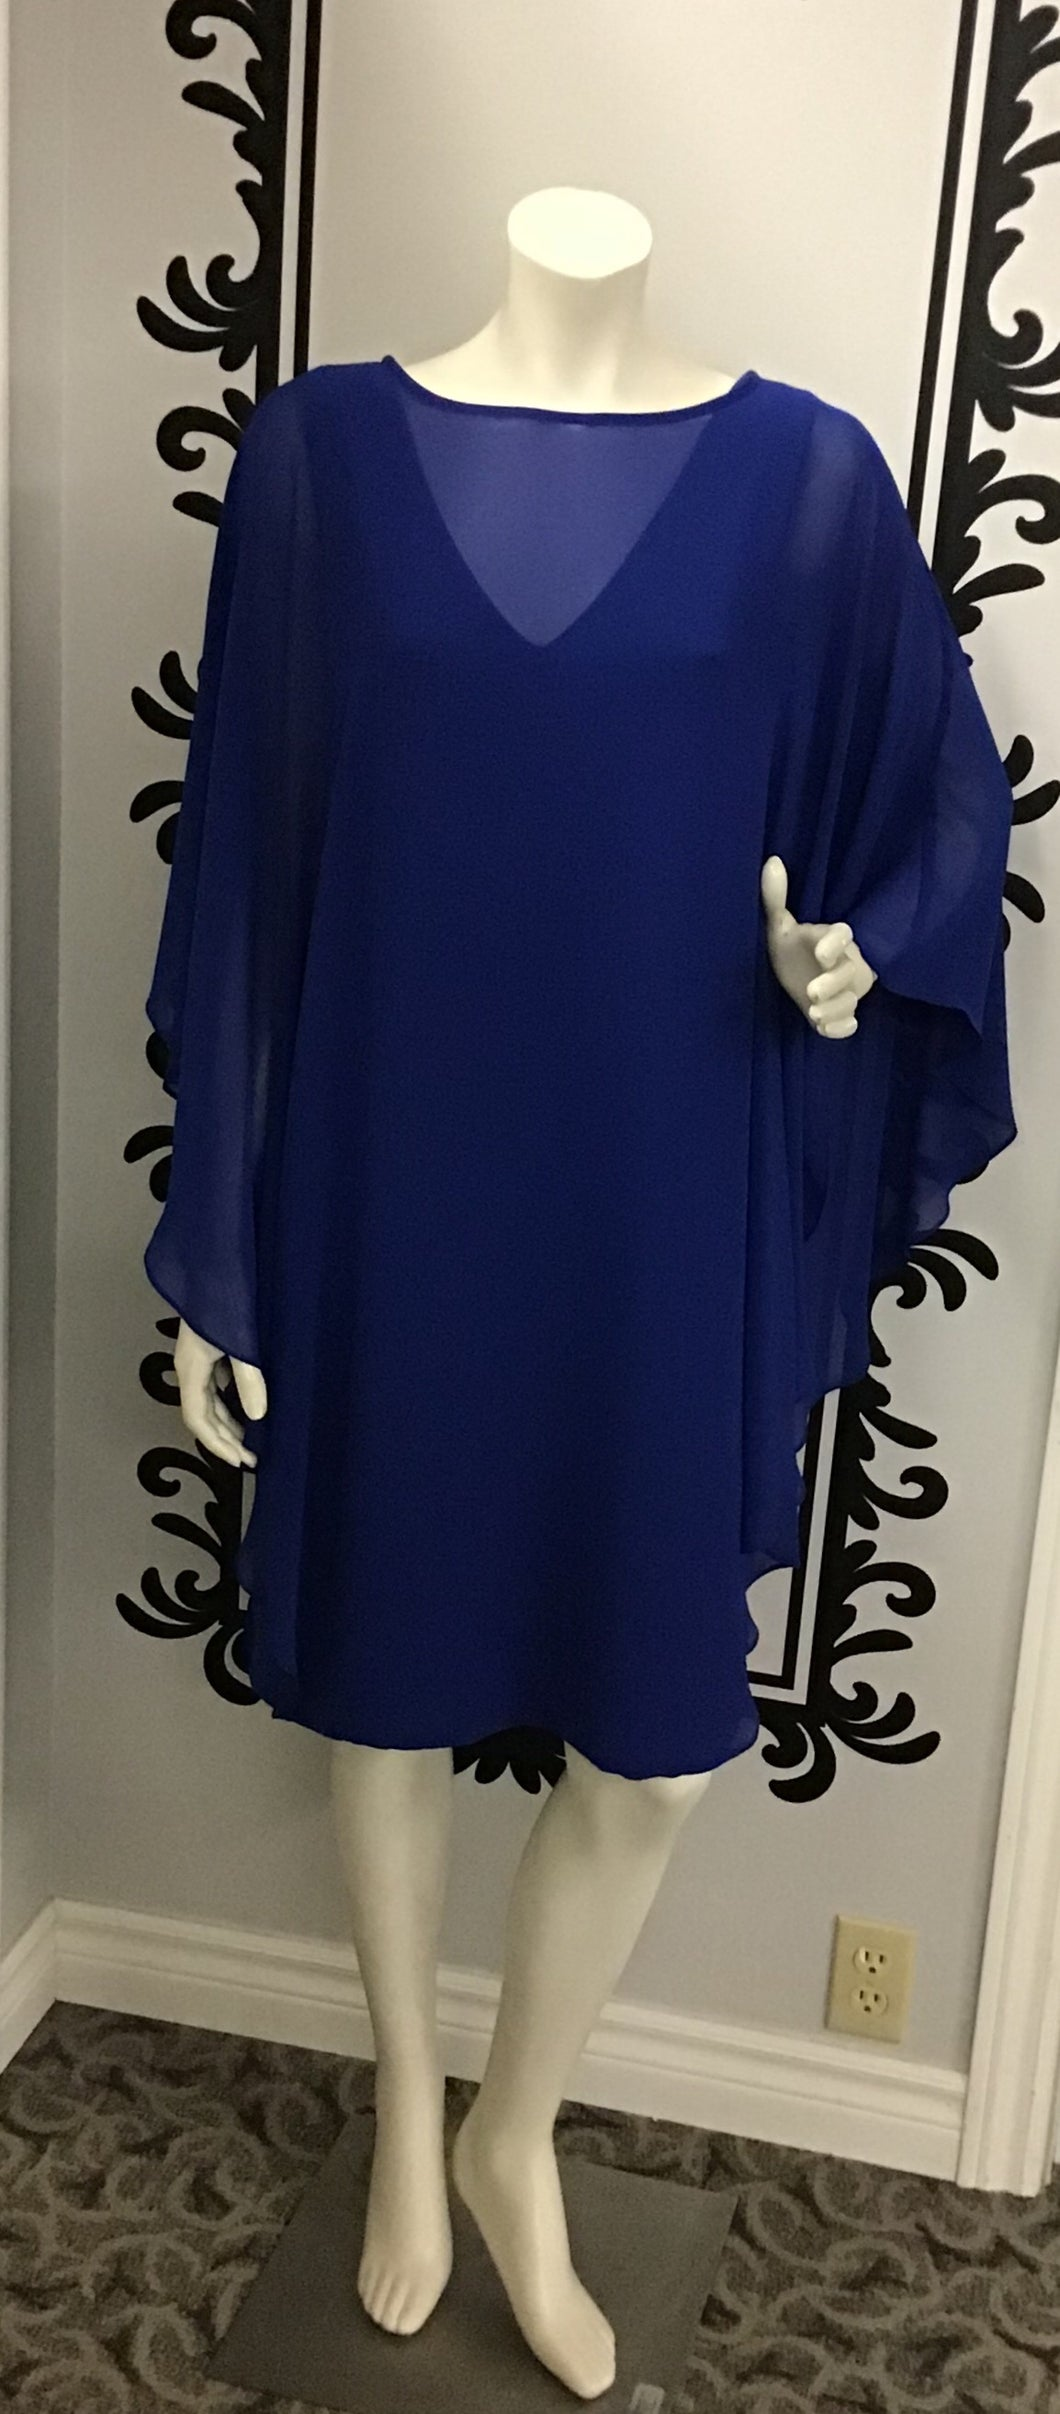 Joseph Ribkoff Spring 2018 Dress -sale